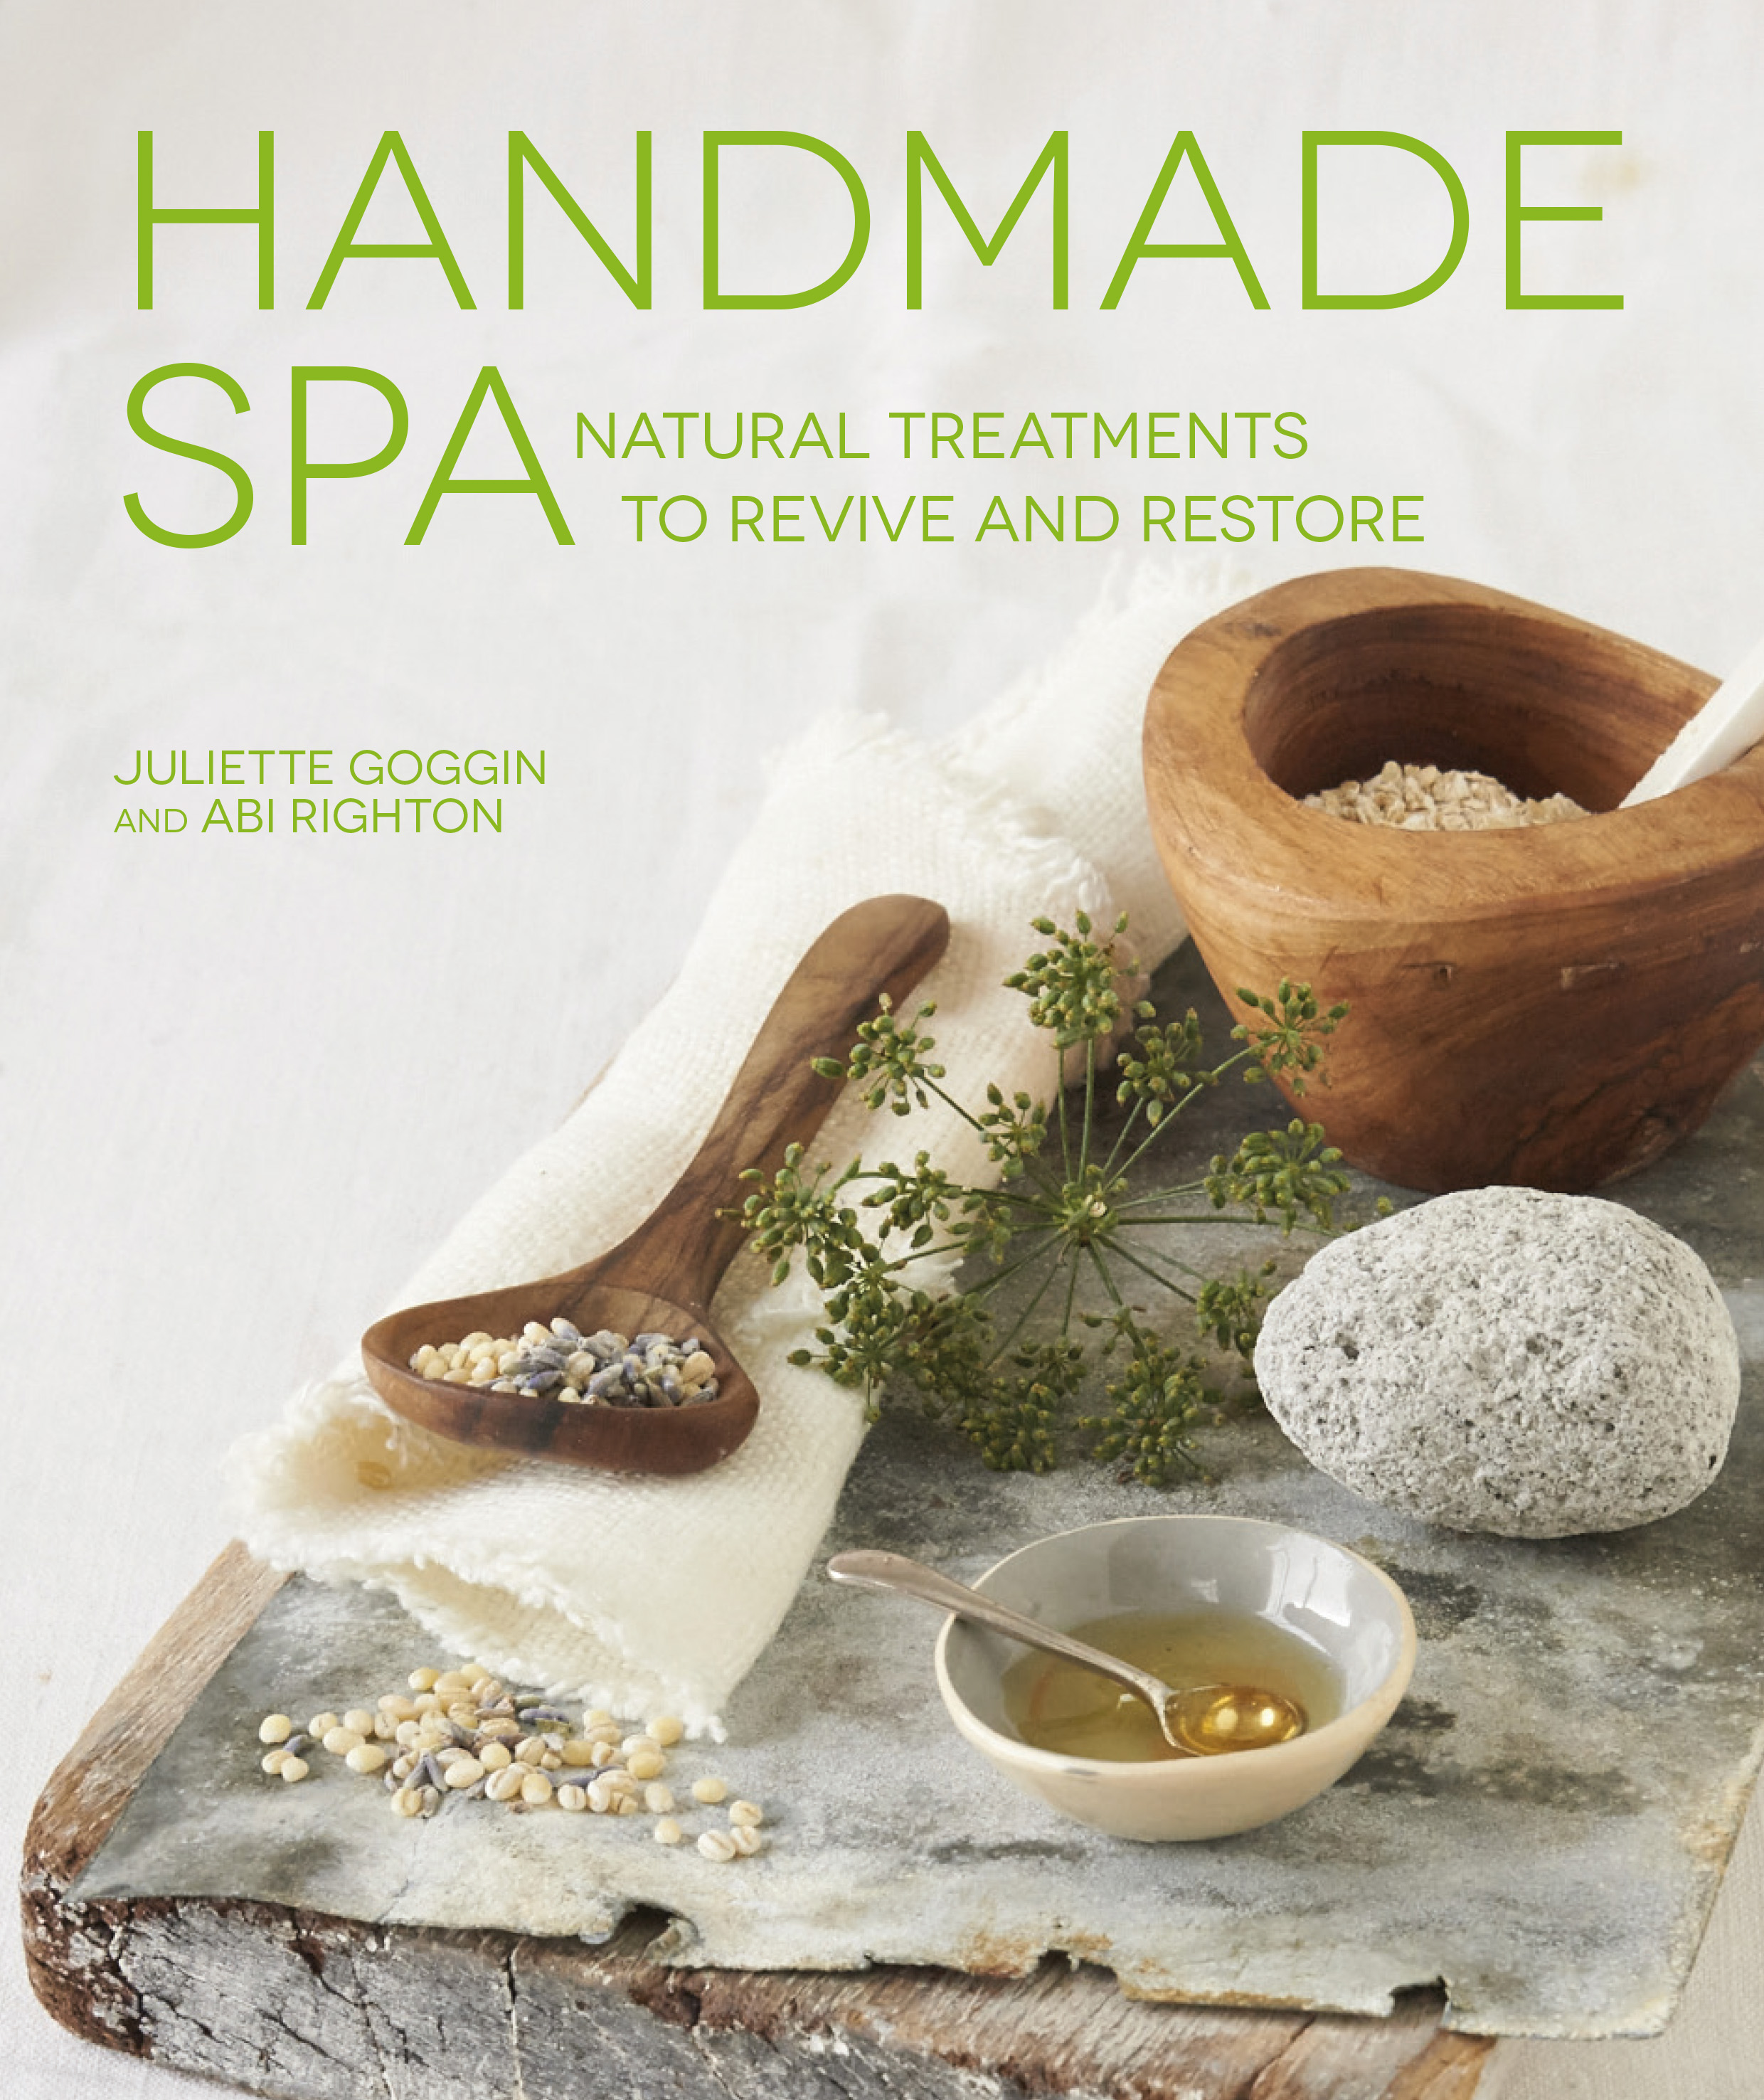 Handmade Spa - Front Cover FINAL.jpg